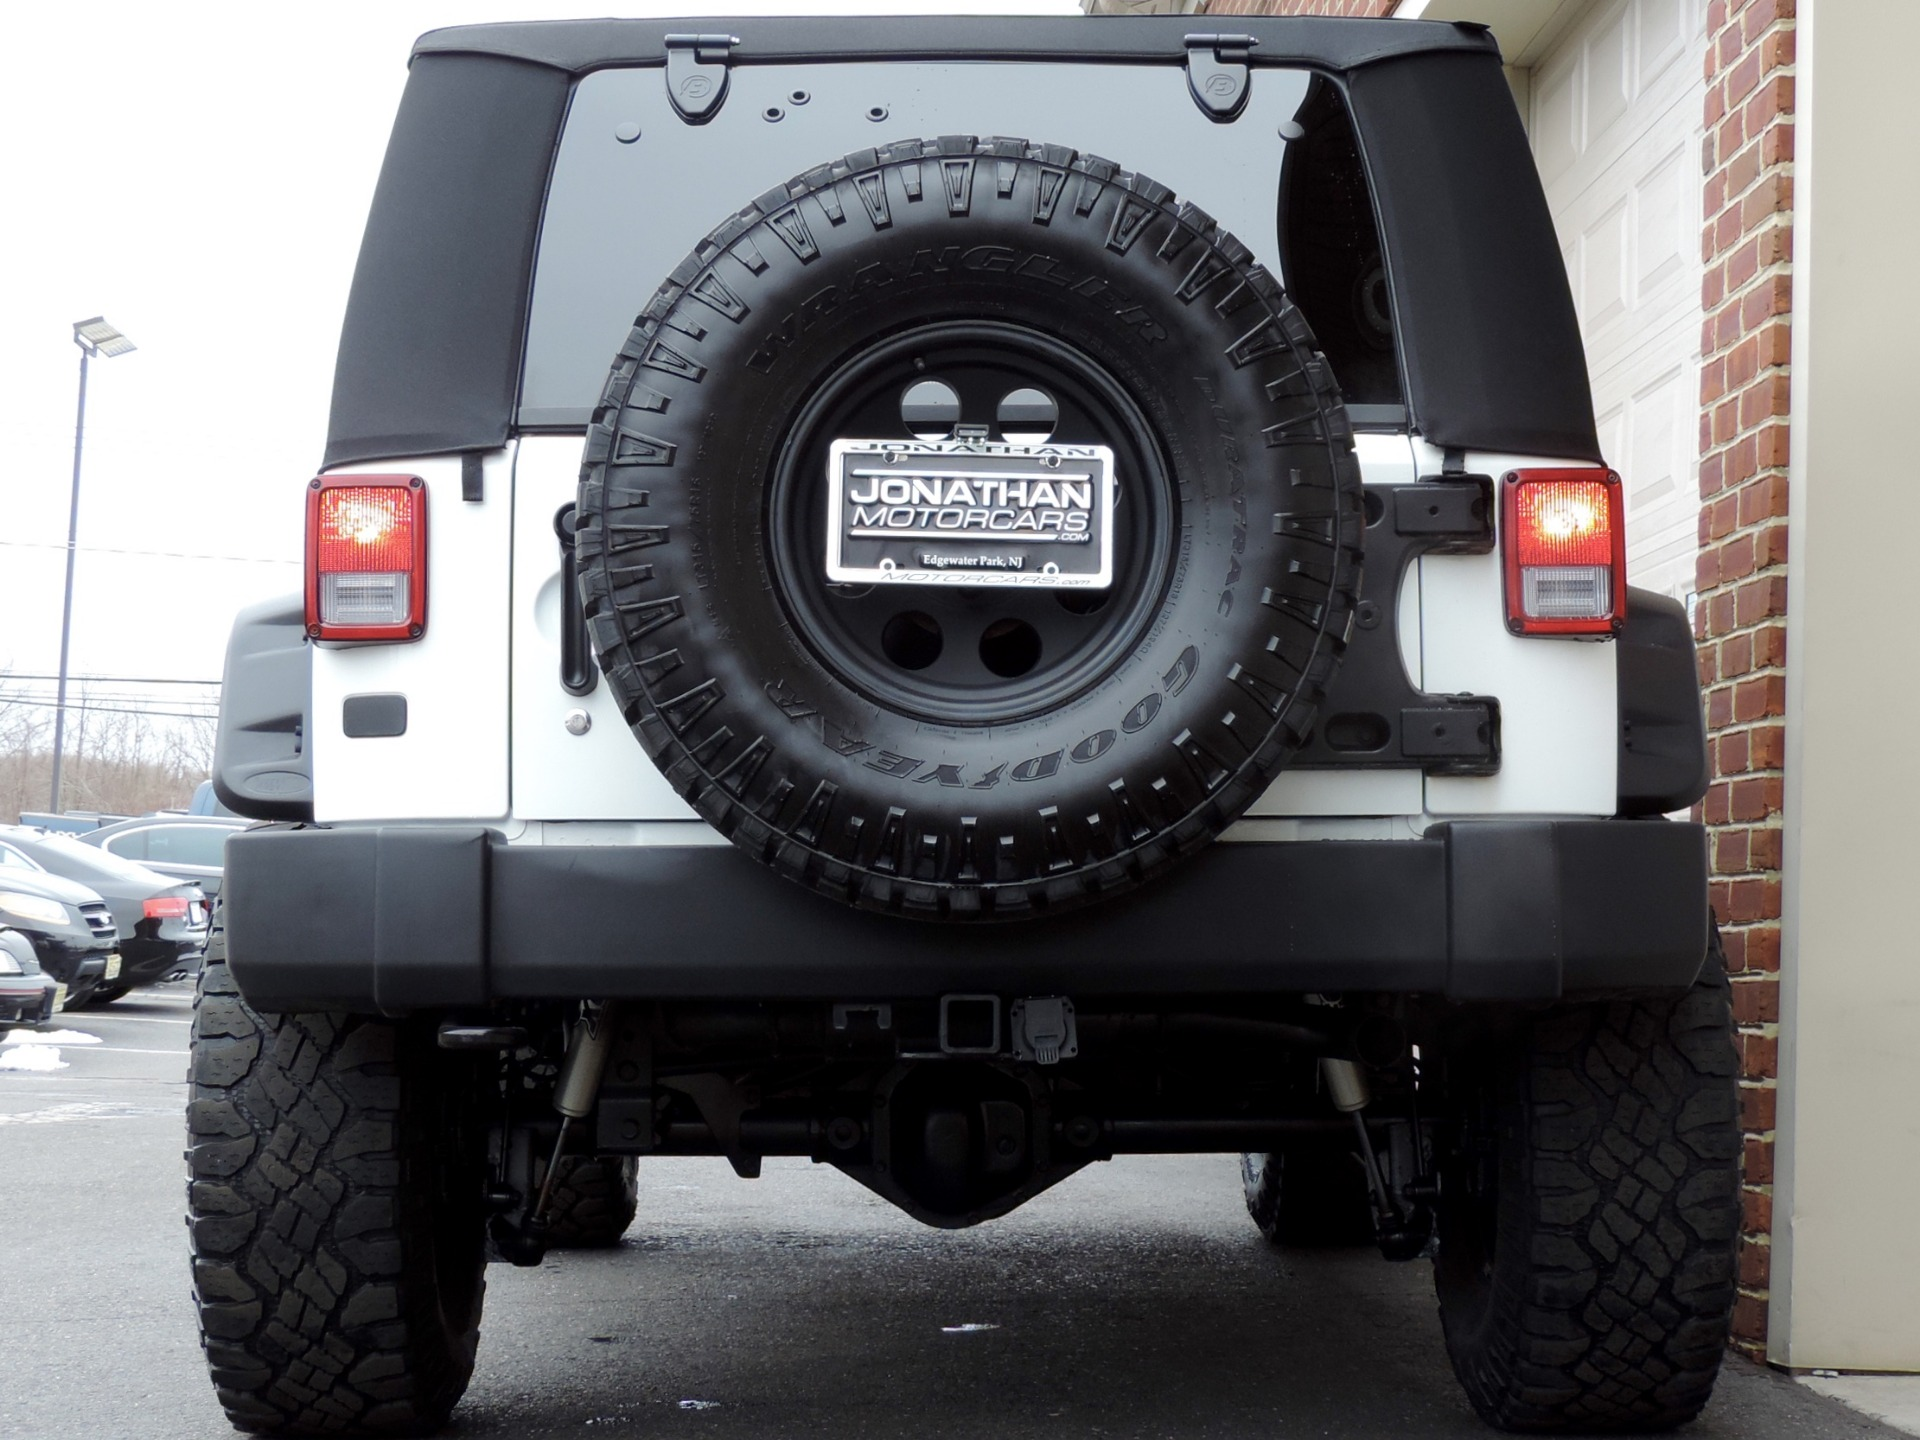 nj for used wrangler in sale cars good design jeep maxresdefault gallery on at jeeps